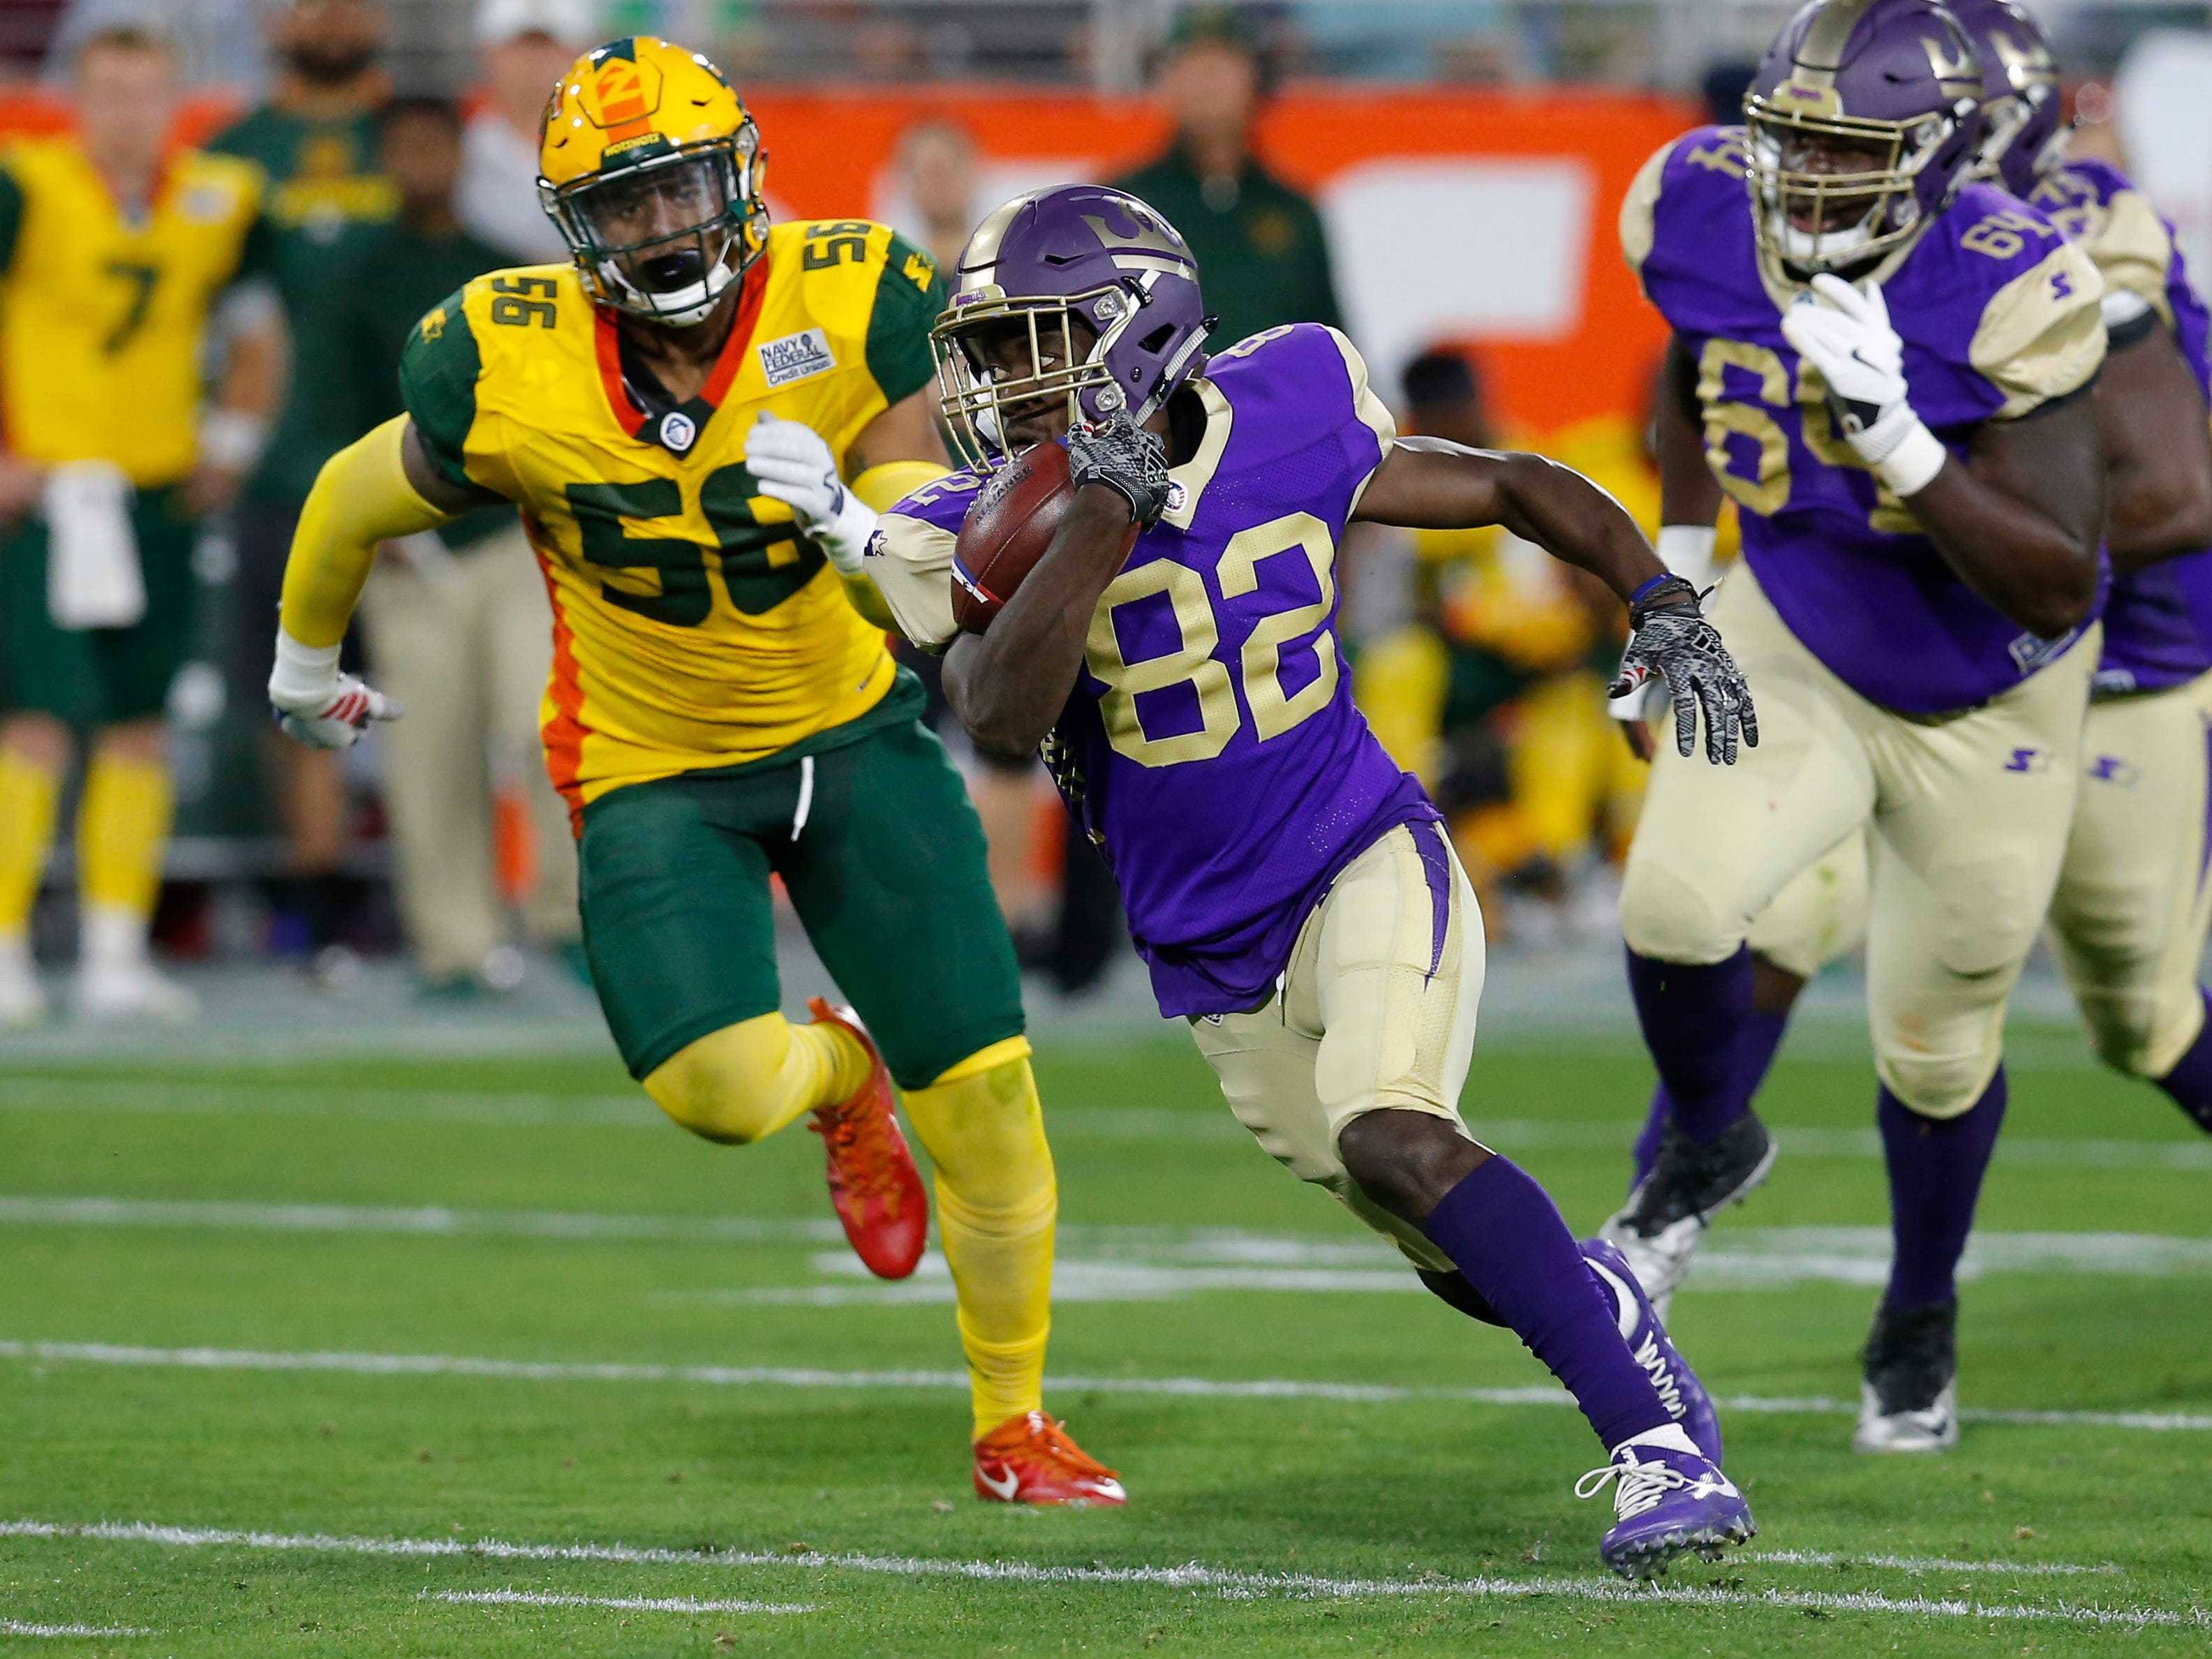 Atlanta Legends wide receiver Ervin Philips (82) runs away from Arizona Hotshots linebacker Da'Sean Downey (56) in the first half during an AAF football game, Sunday, March 3, 2019, at Sun Devil Stadium in Phoenix.